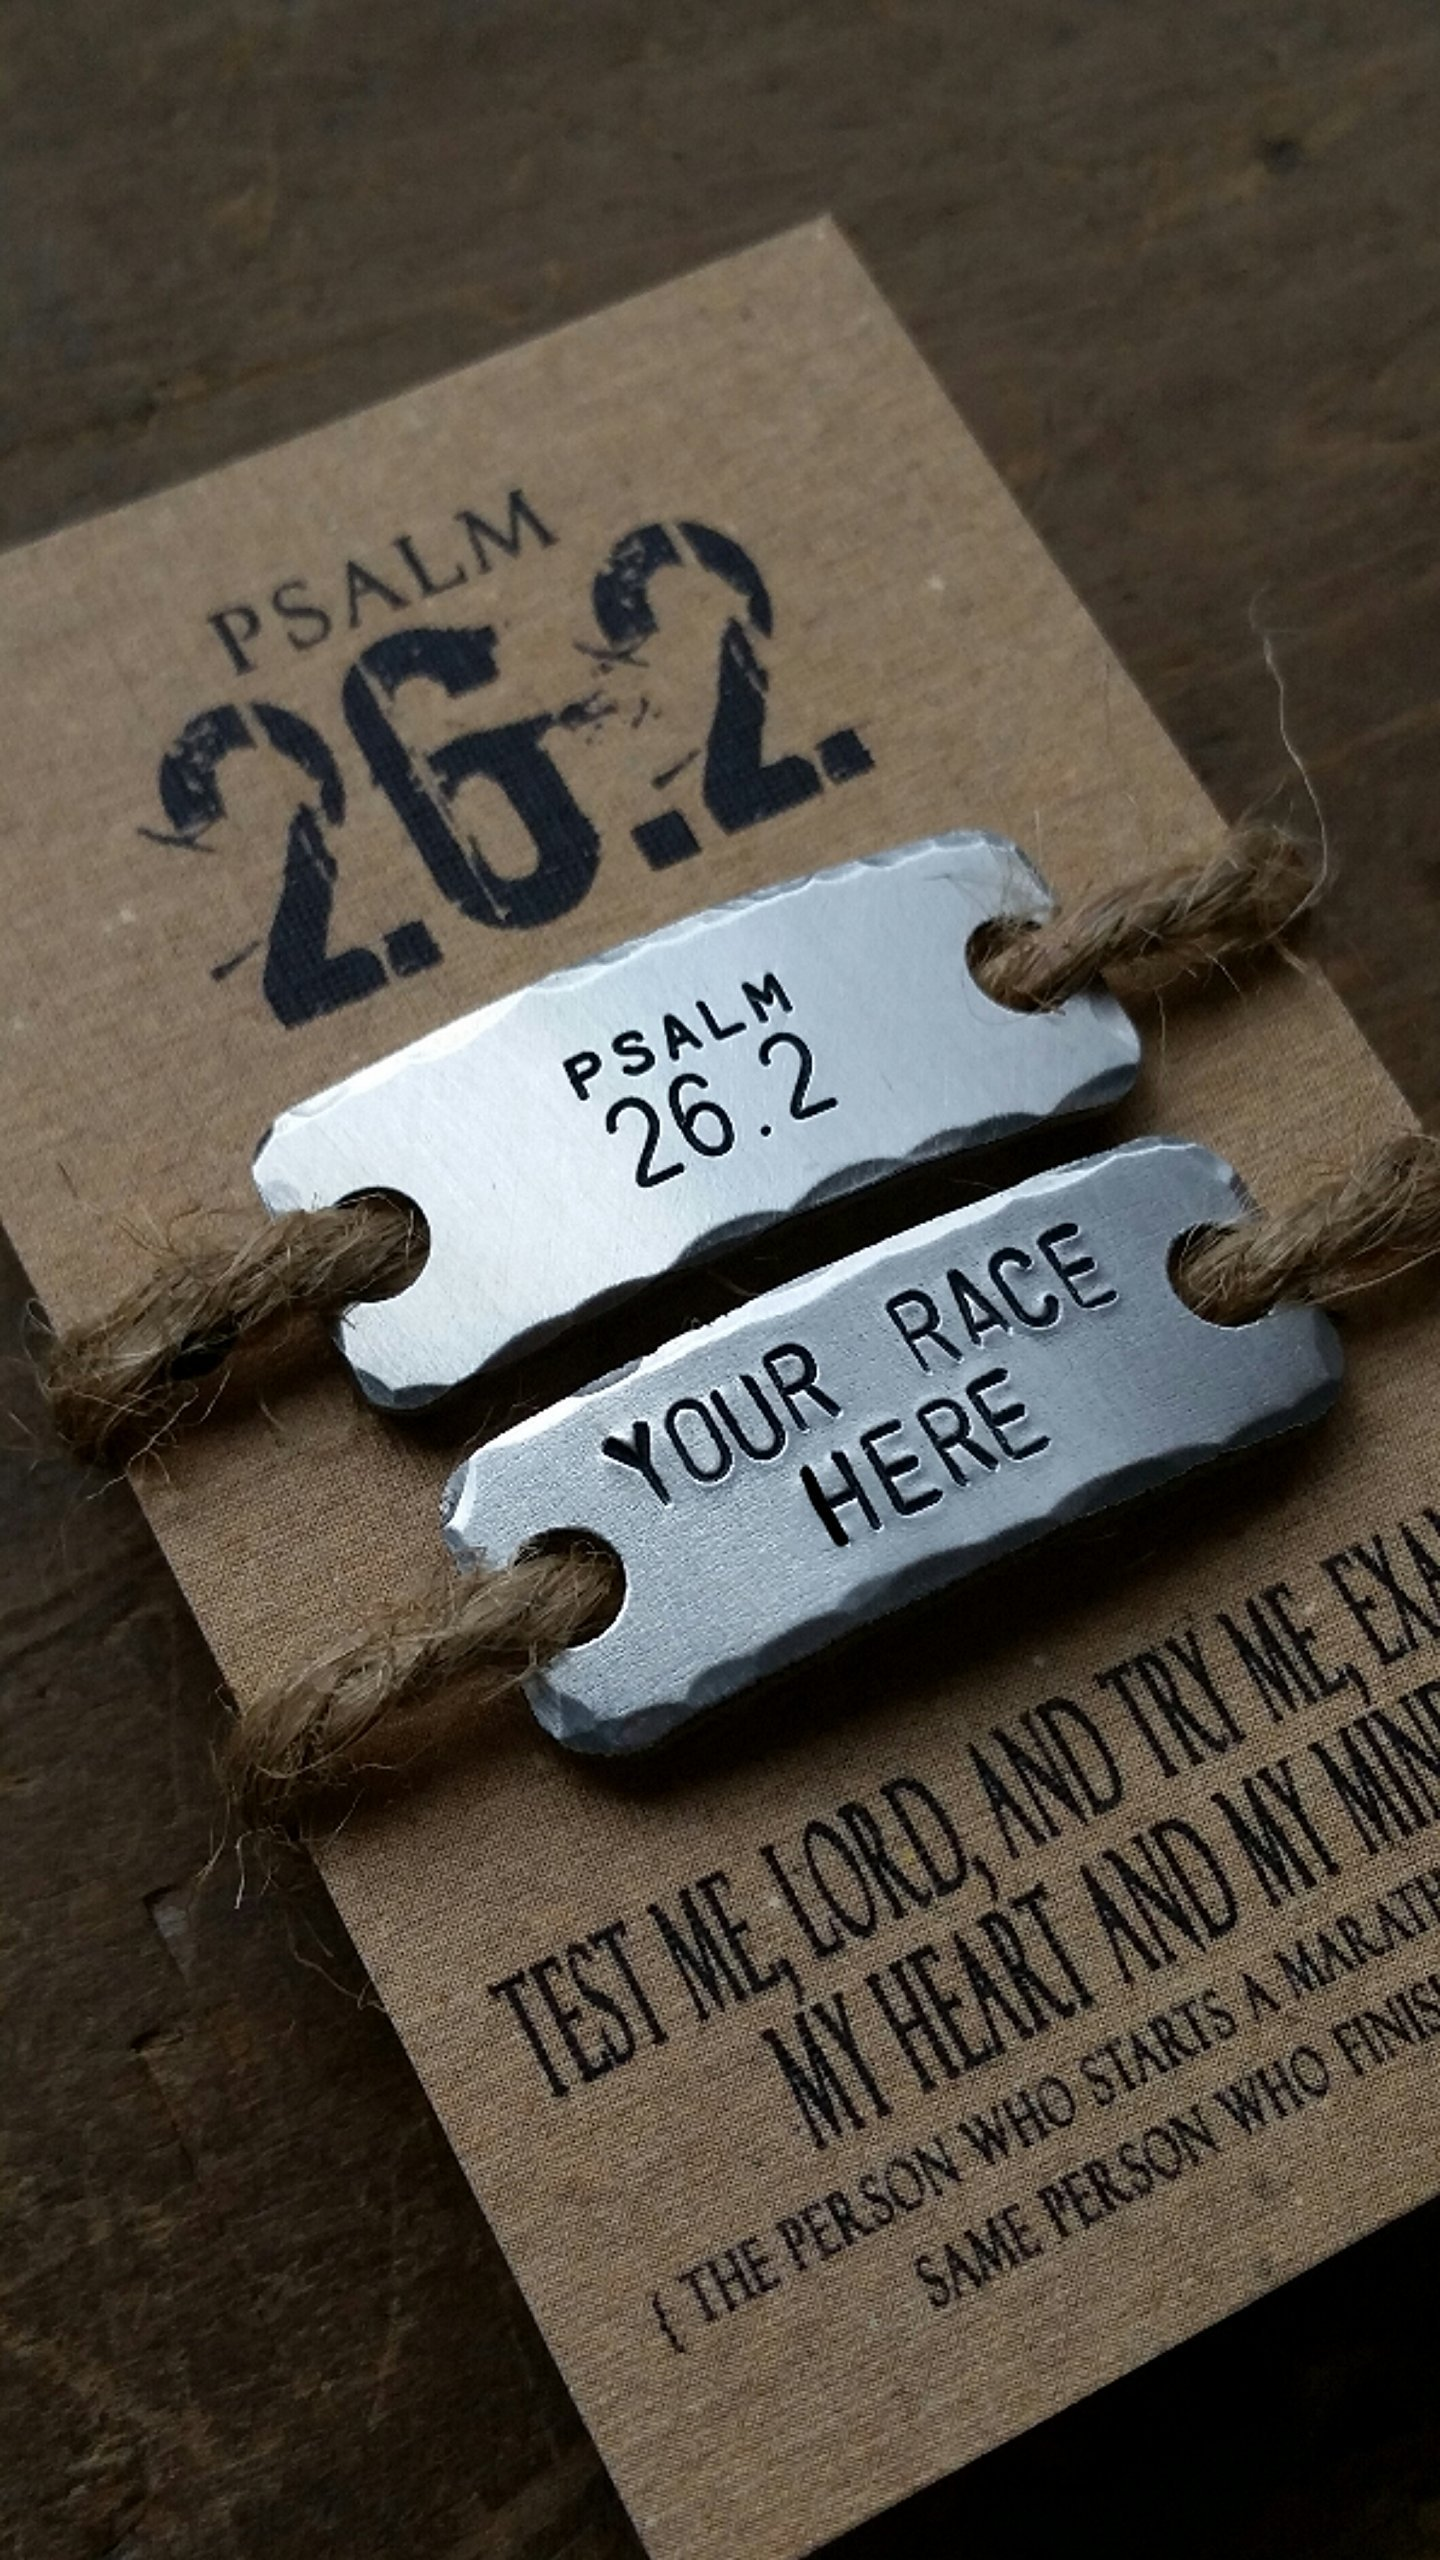 {SET OF TWO TAGS} Psalm 26.2 Marathon Inspiration Personalized shoe lace tag . fitness motivation . team sports jewelry . trainer tags . marathon gift